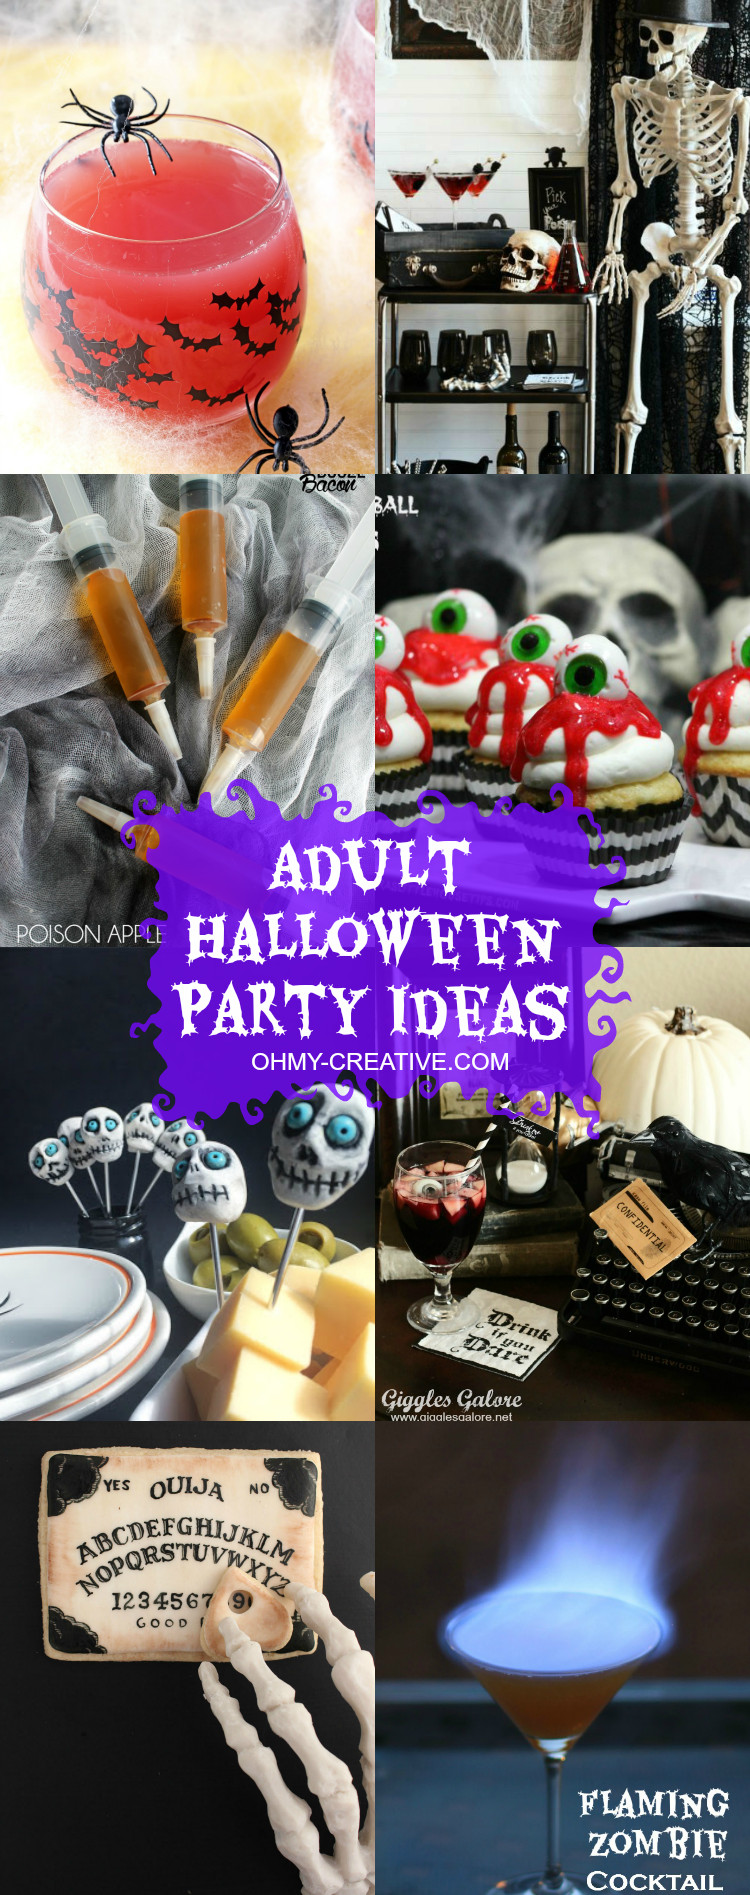 Halloween Party Ideas Adult  Adult Halloween Party Ideas Oh My Creative